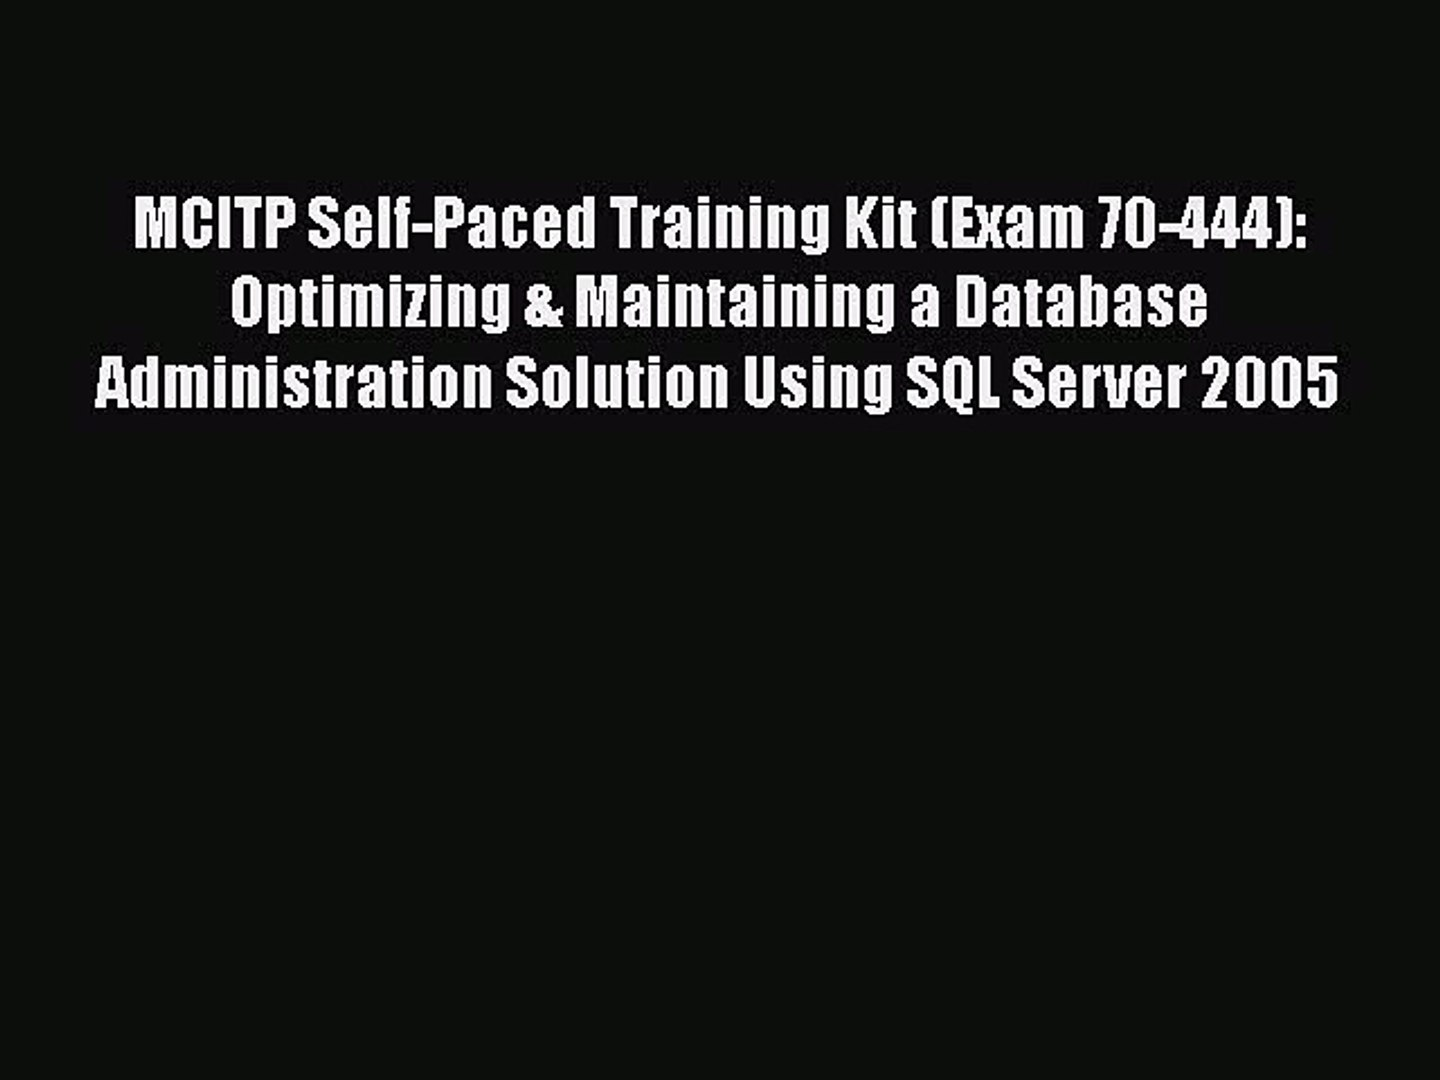 Read MCITP Self-Paced Training Kit (Exam 70-444): Optimizing & Maintaining a Database Administra